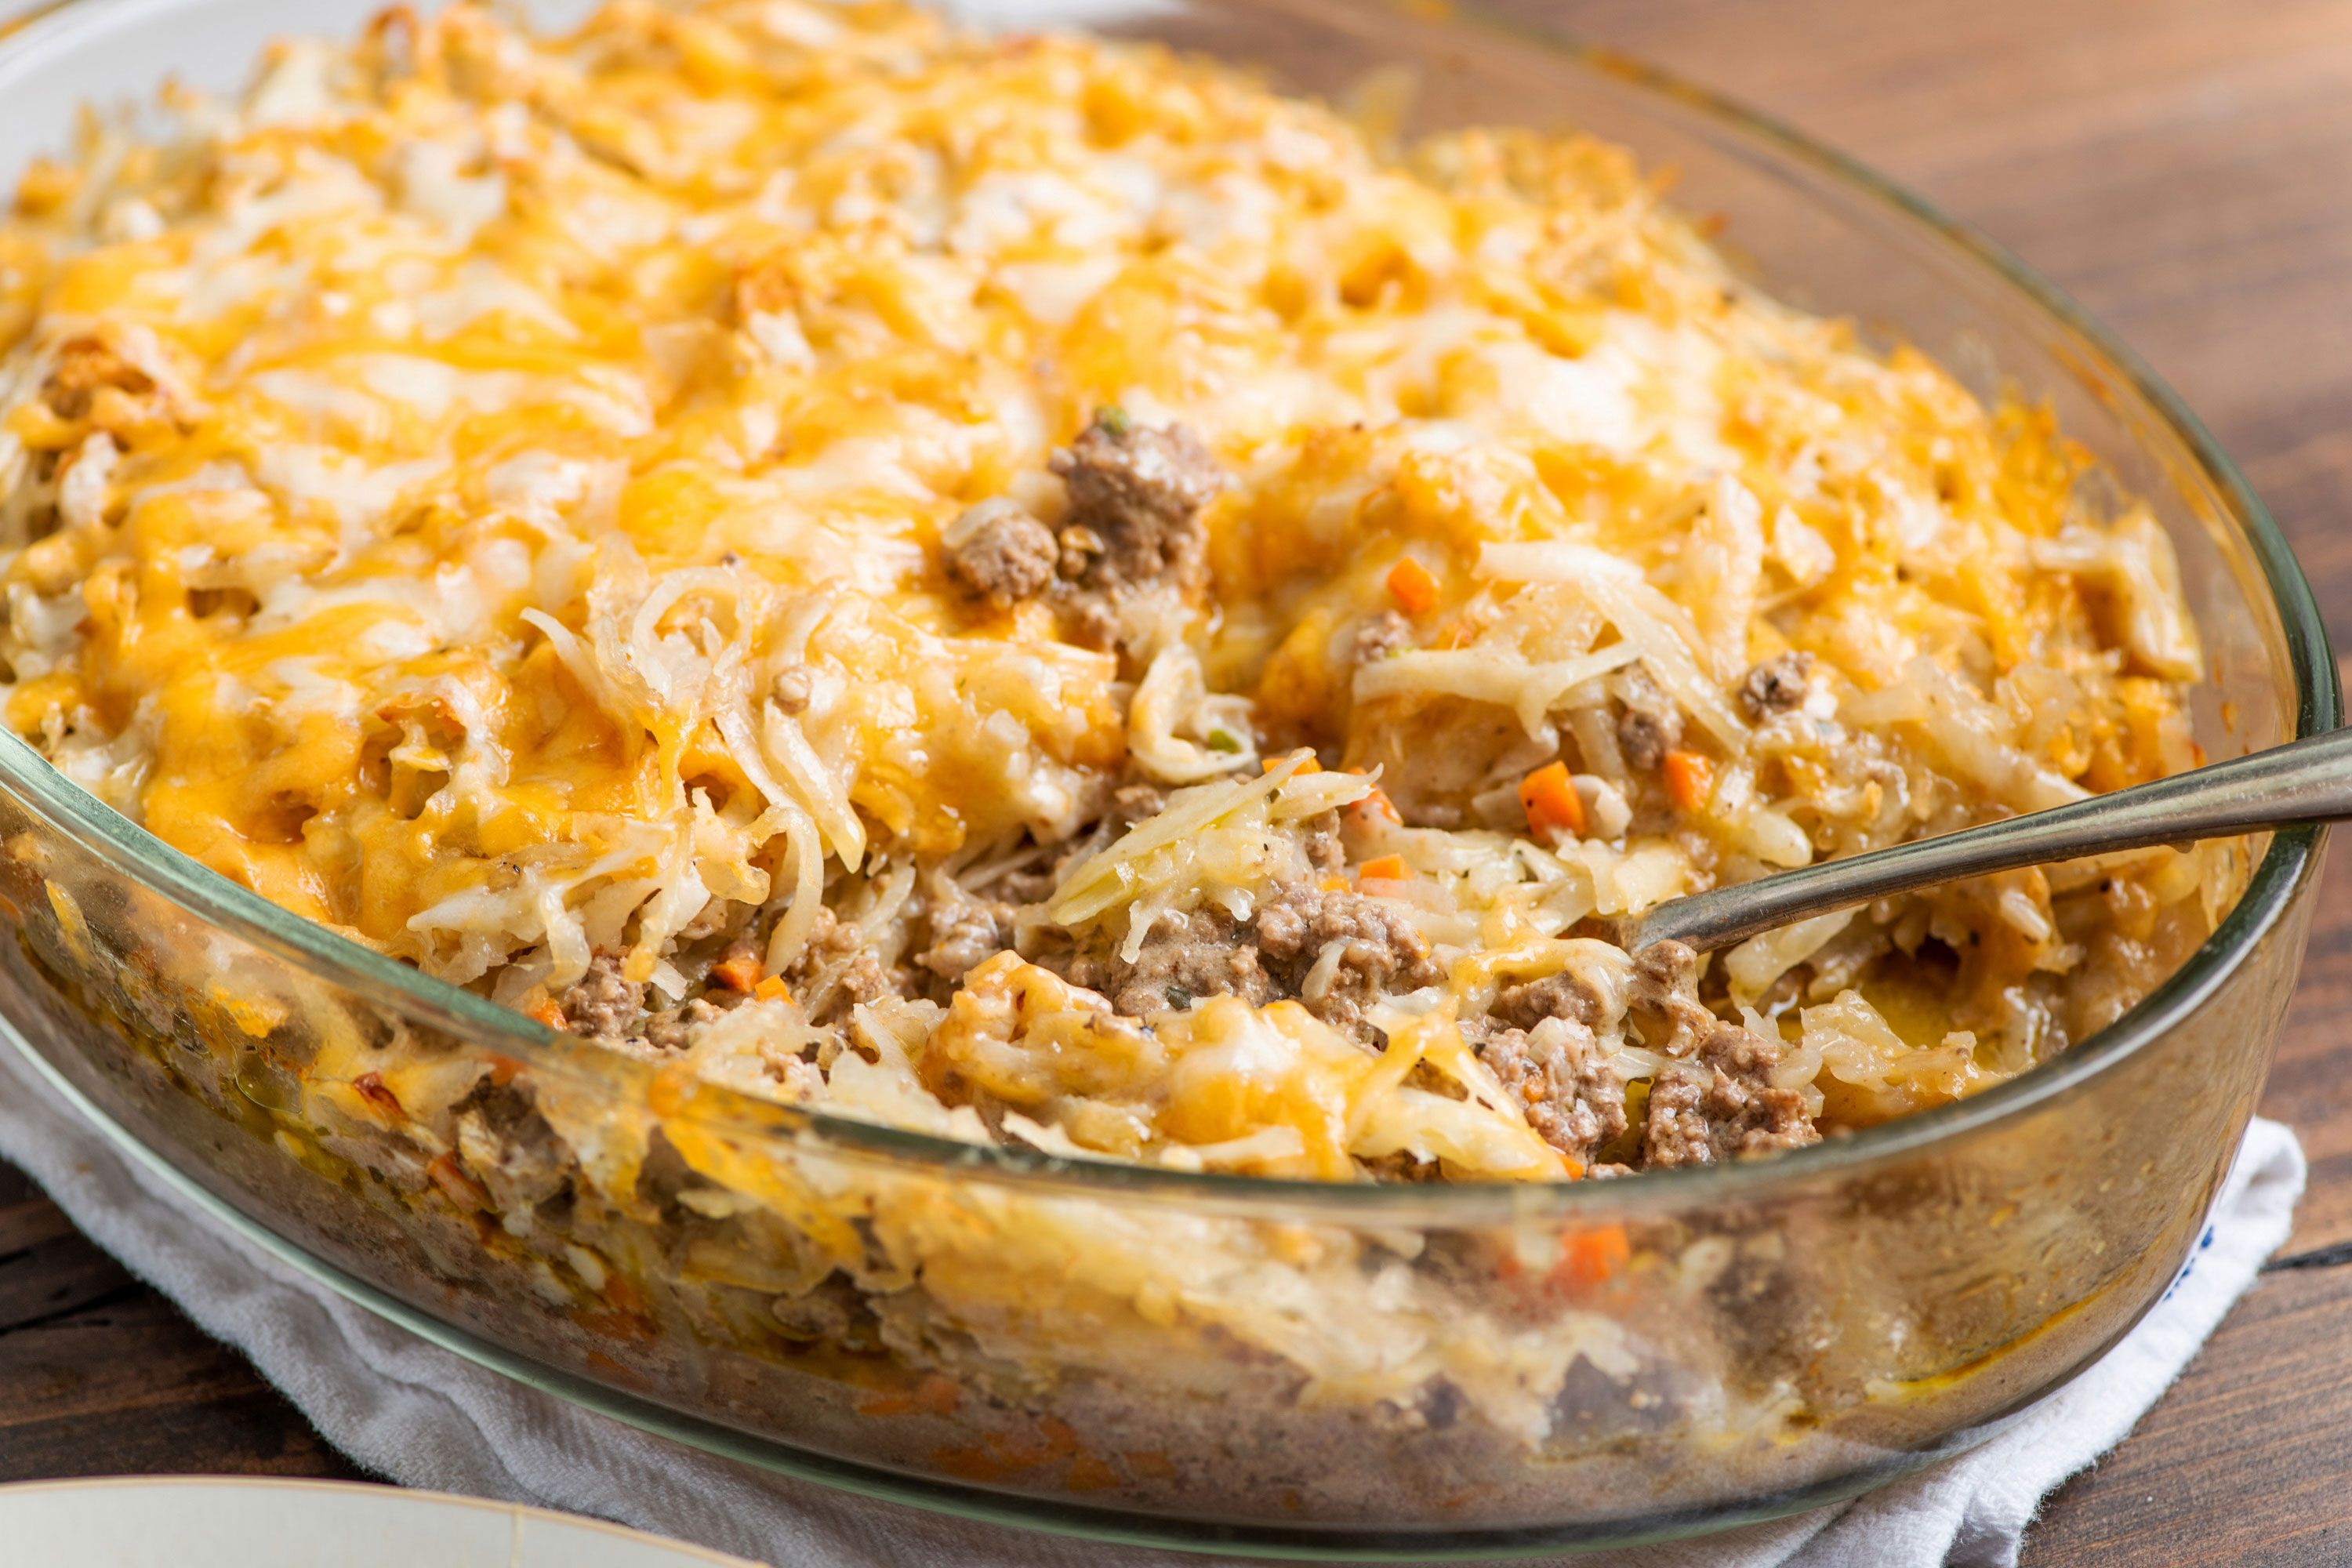 Crispy But Tender Shredded Potatoes Top A Casserole Of Juicy Ground Beef Bound Together With Hash Brown Casserole Shredded Hashbrown Recipes Shredded Potatoes